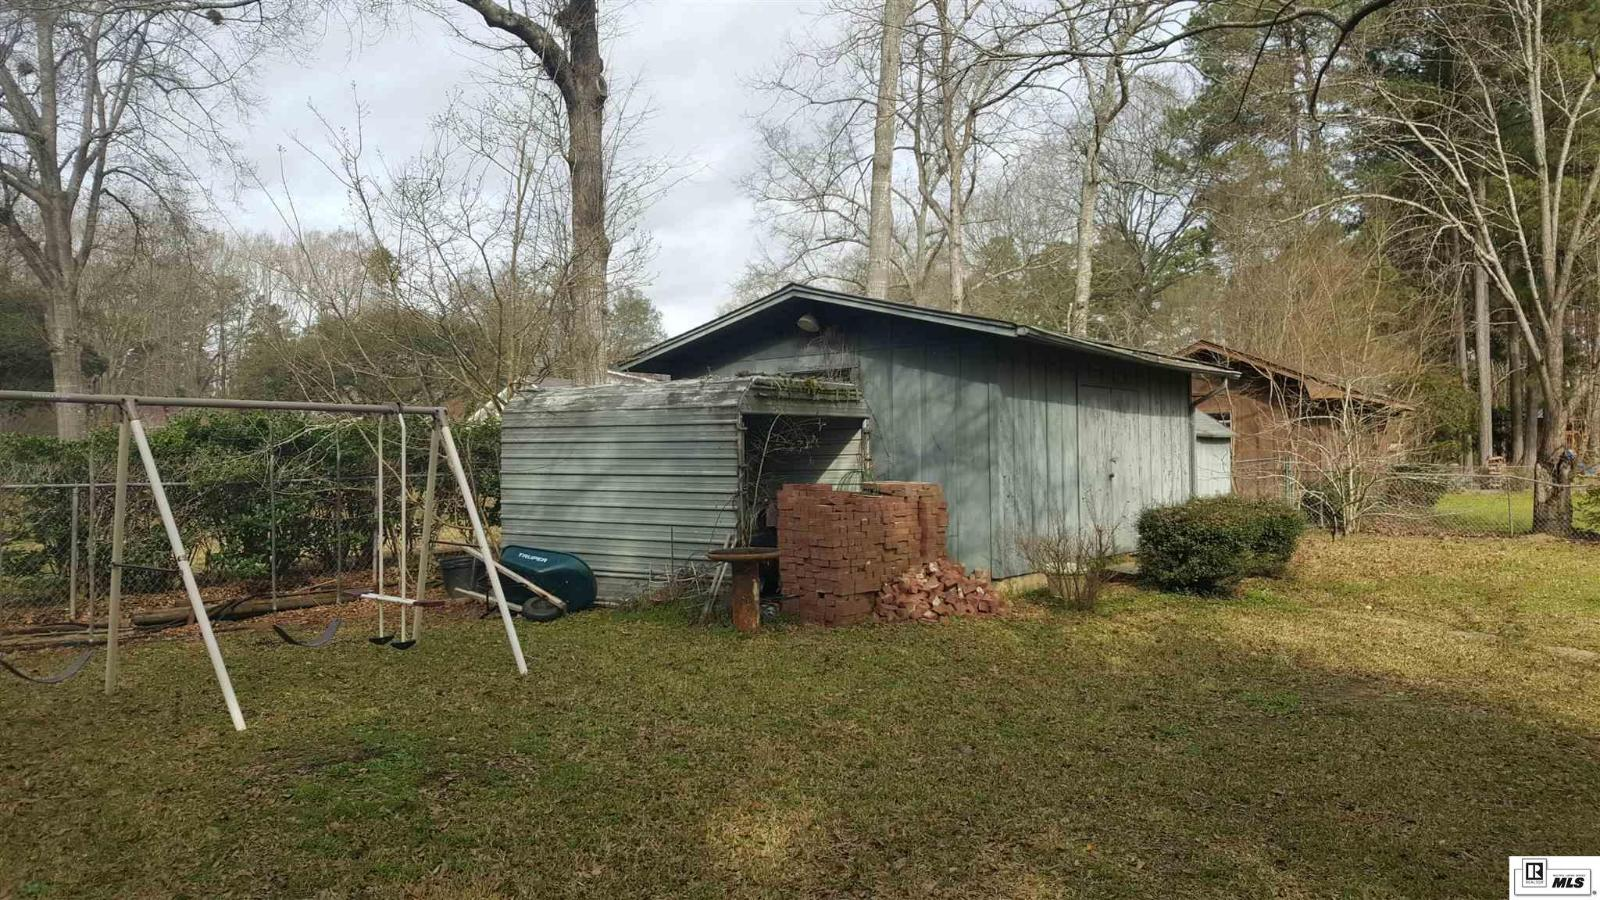 8790034bd8 ... 2301 Lily Drive, Ruston, LA 71270   Image #6 of 29 from carousel ...